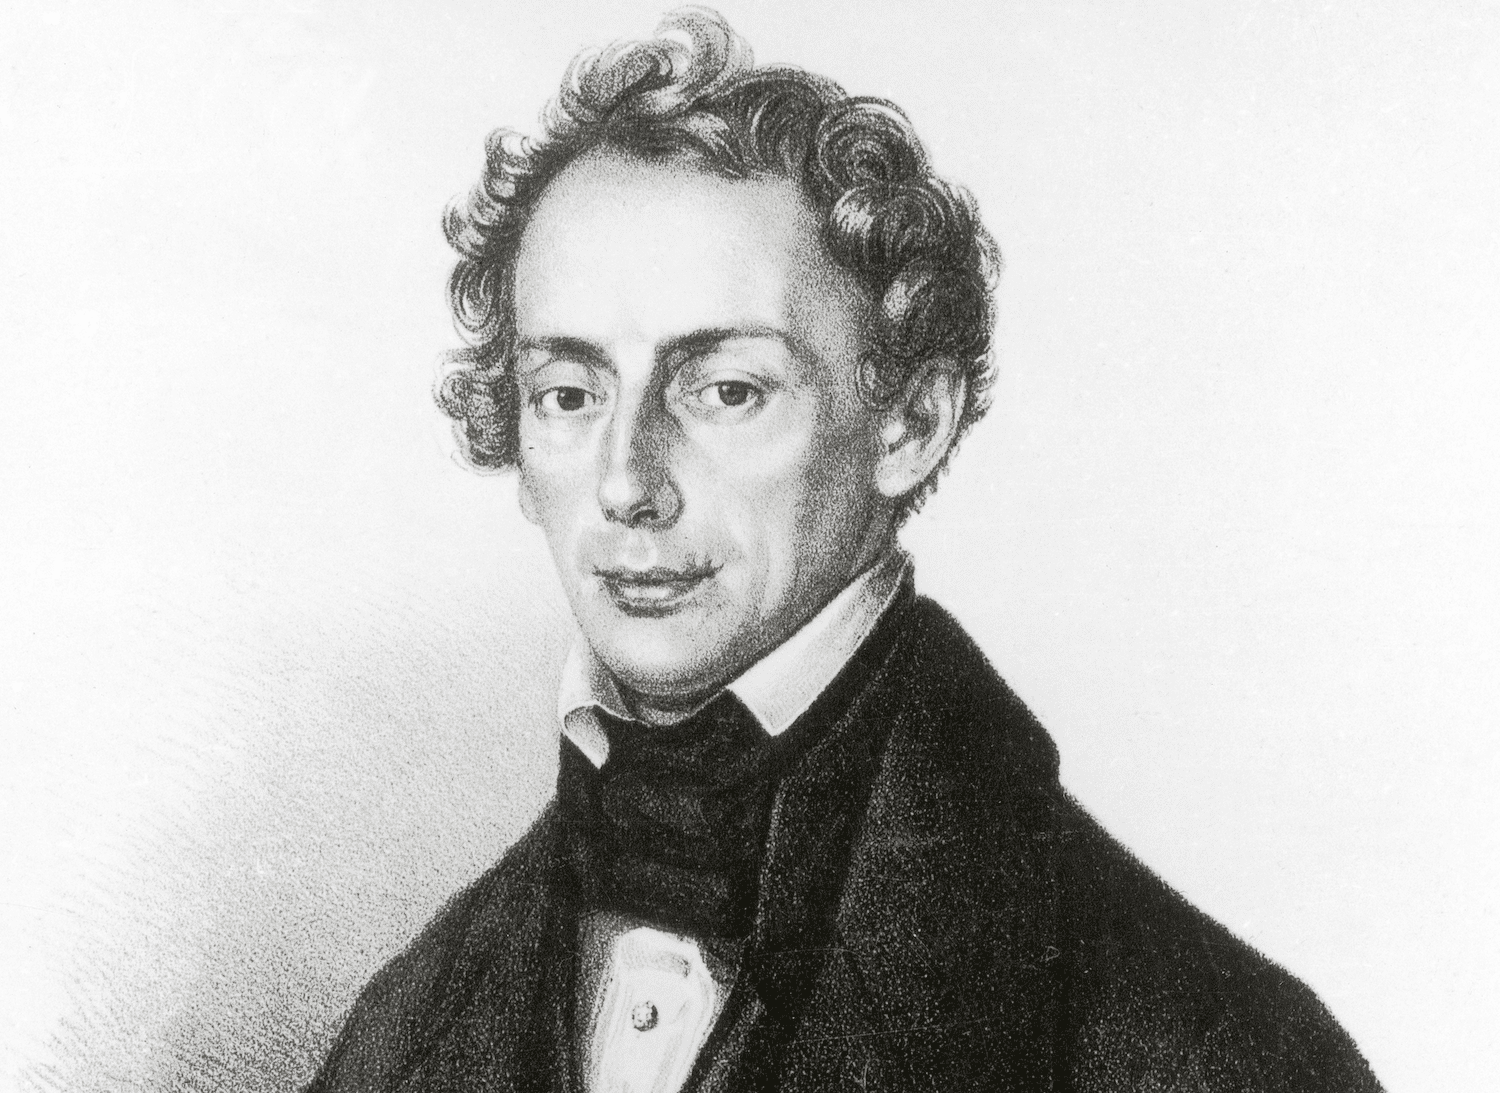 Biography of Christian Doppler, Mathematician and Physicist